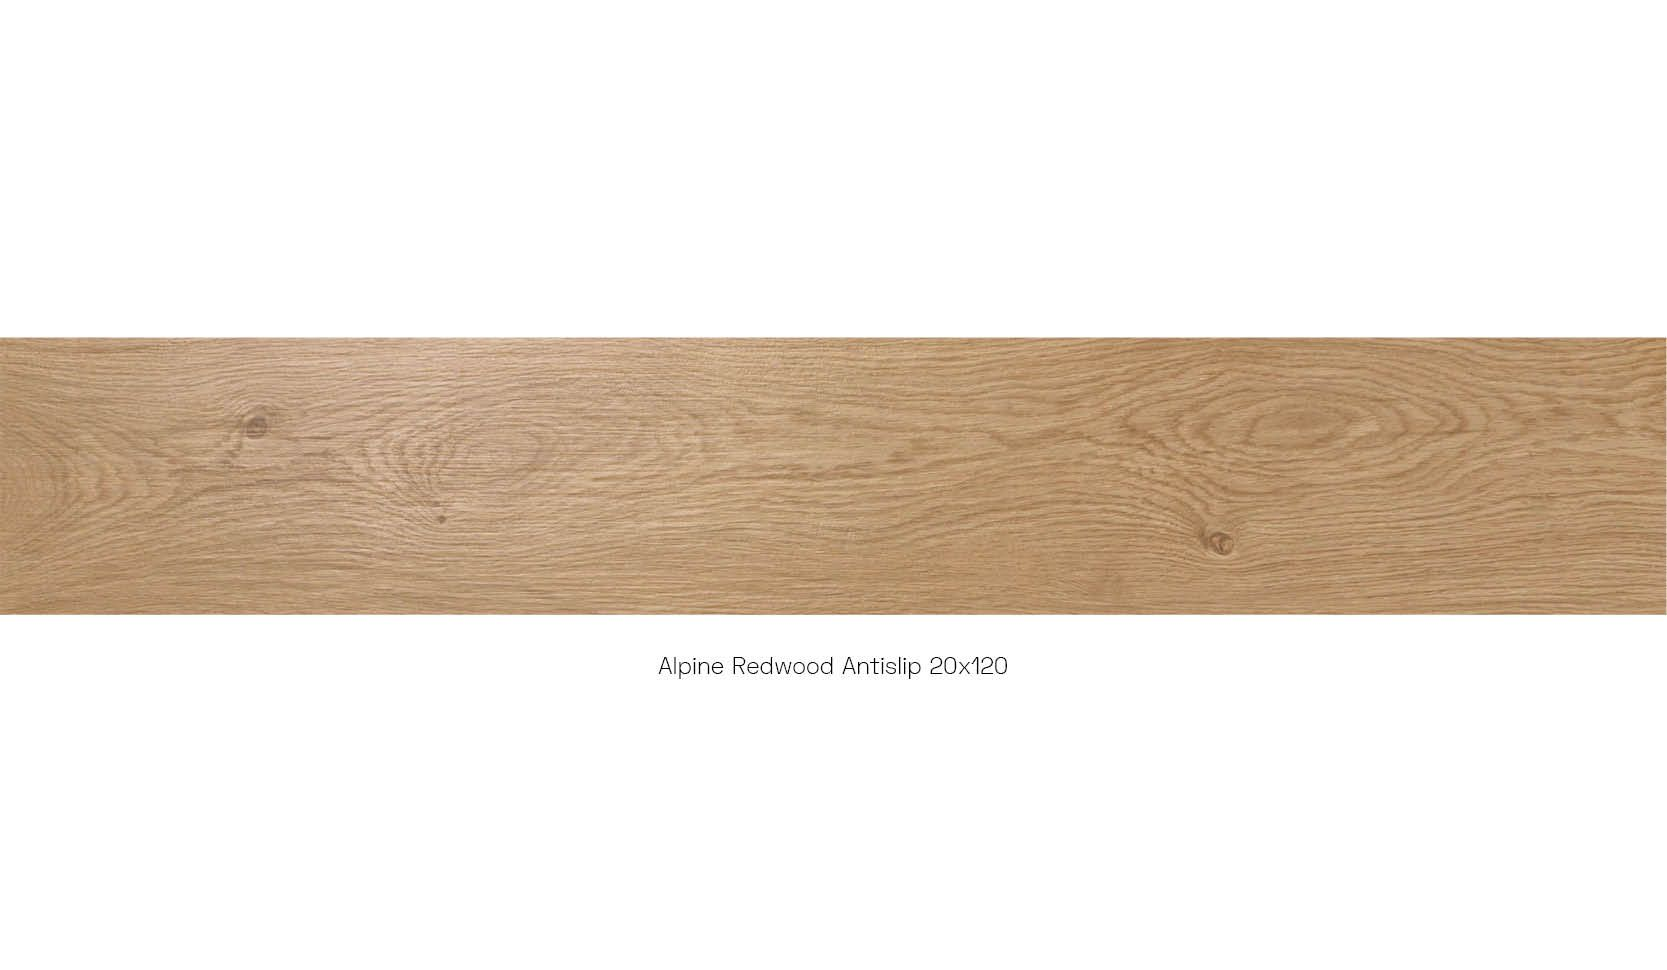 Alpine redwood antislip 20 x 120